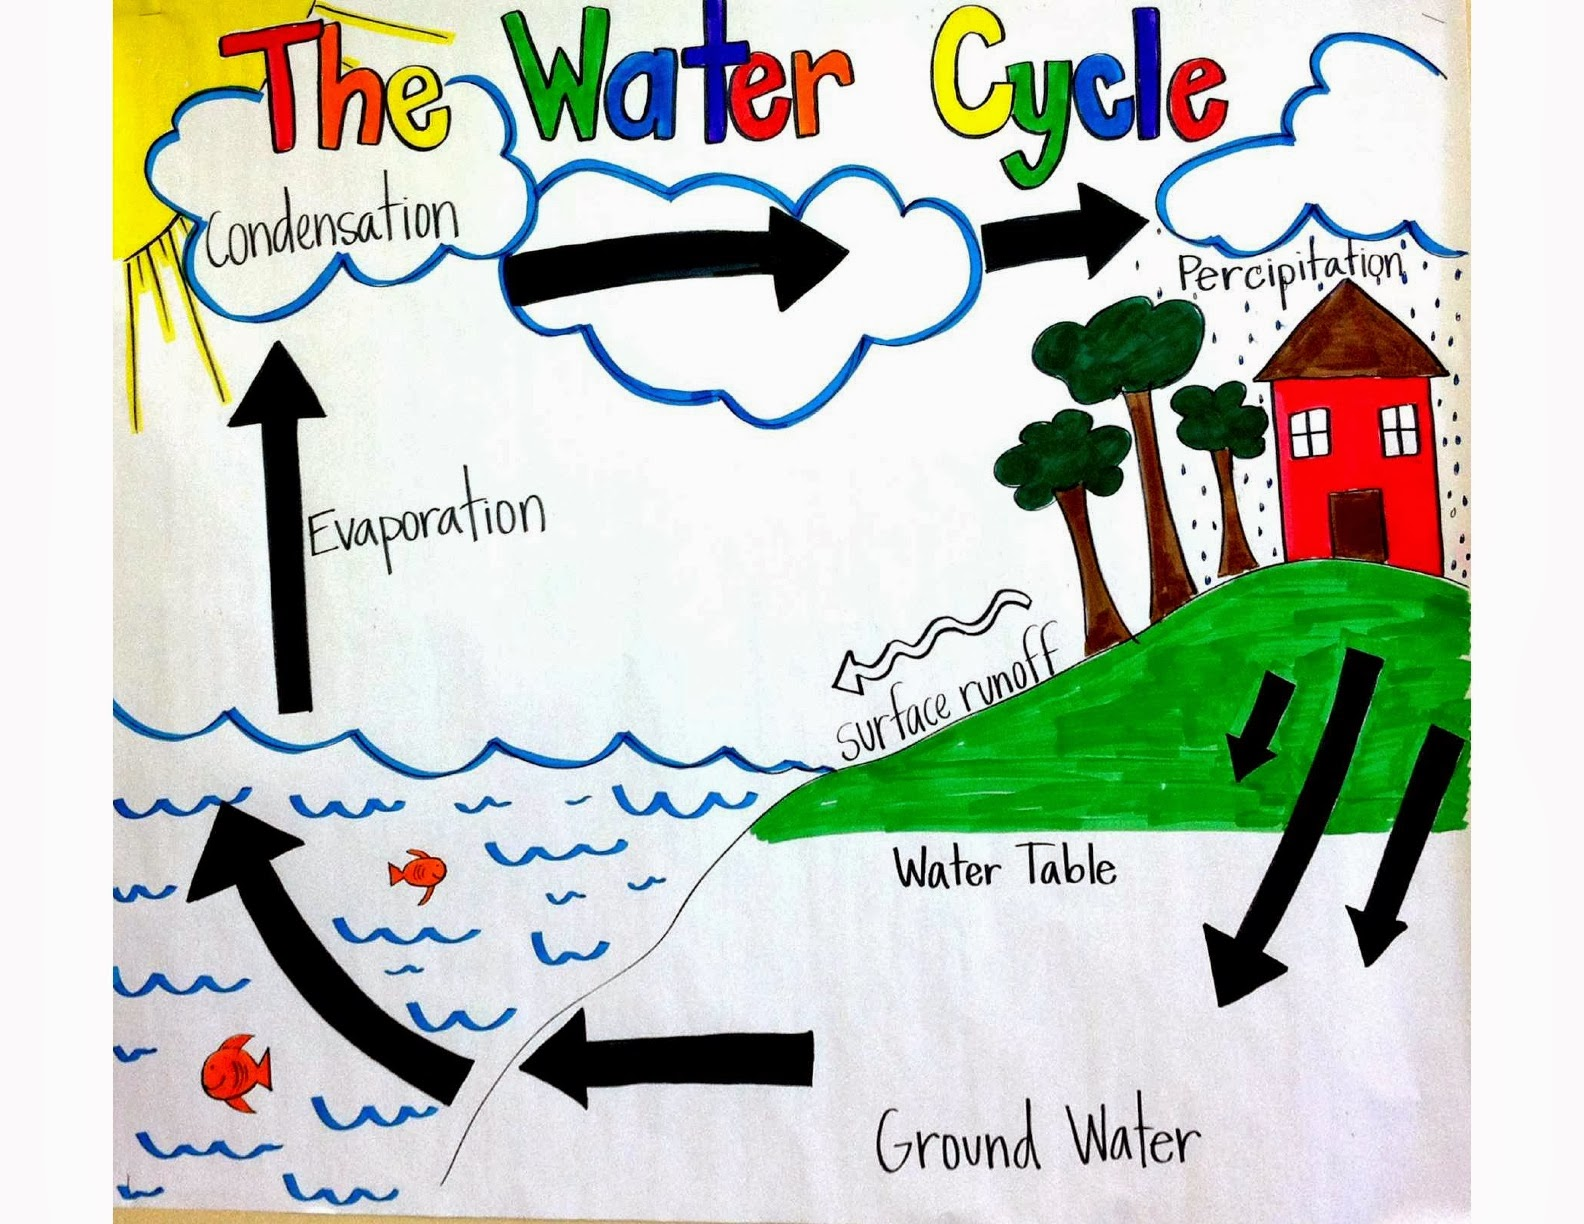 water cycle poster project Water cycle poster project you have been learning about the water cycle the water cycle is continually changing from liquid water to water vapor to ice.